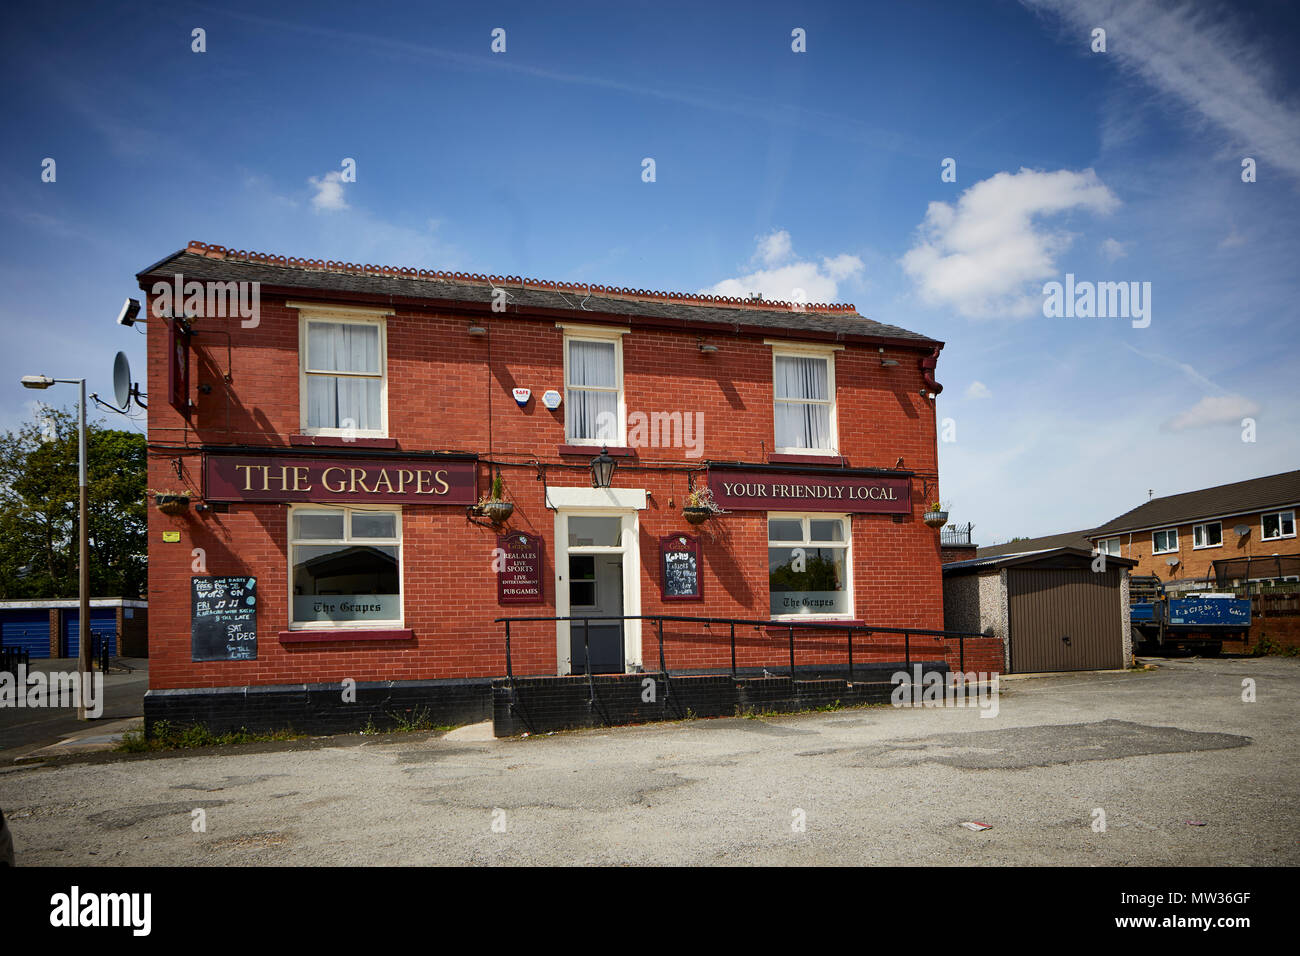 Stockport The Grapes pub in Heaton Norris famed for Early Doors tv show based on the pub & Stockport The Grapes pub in Heaton Norris famed for Early Doors tv ...